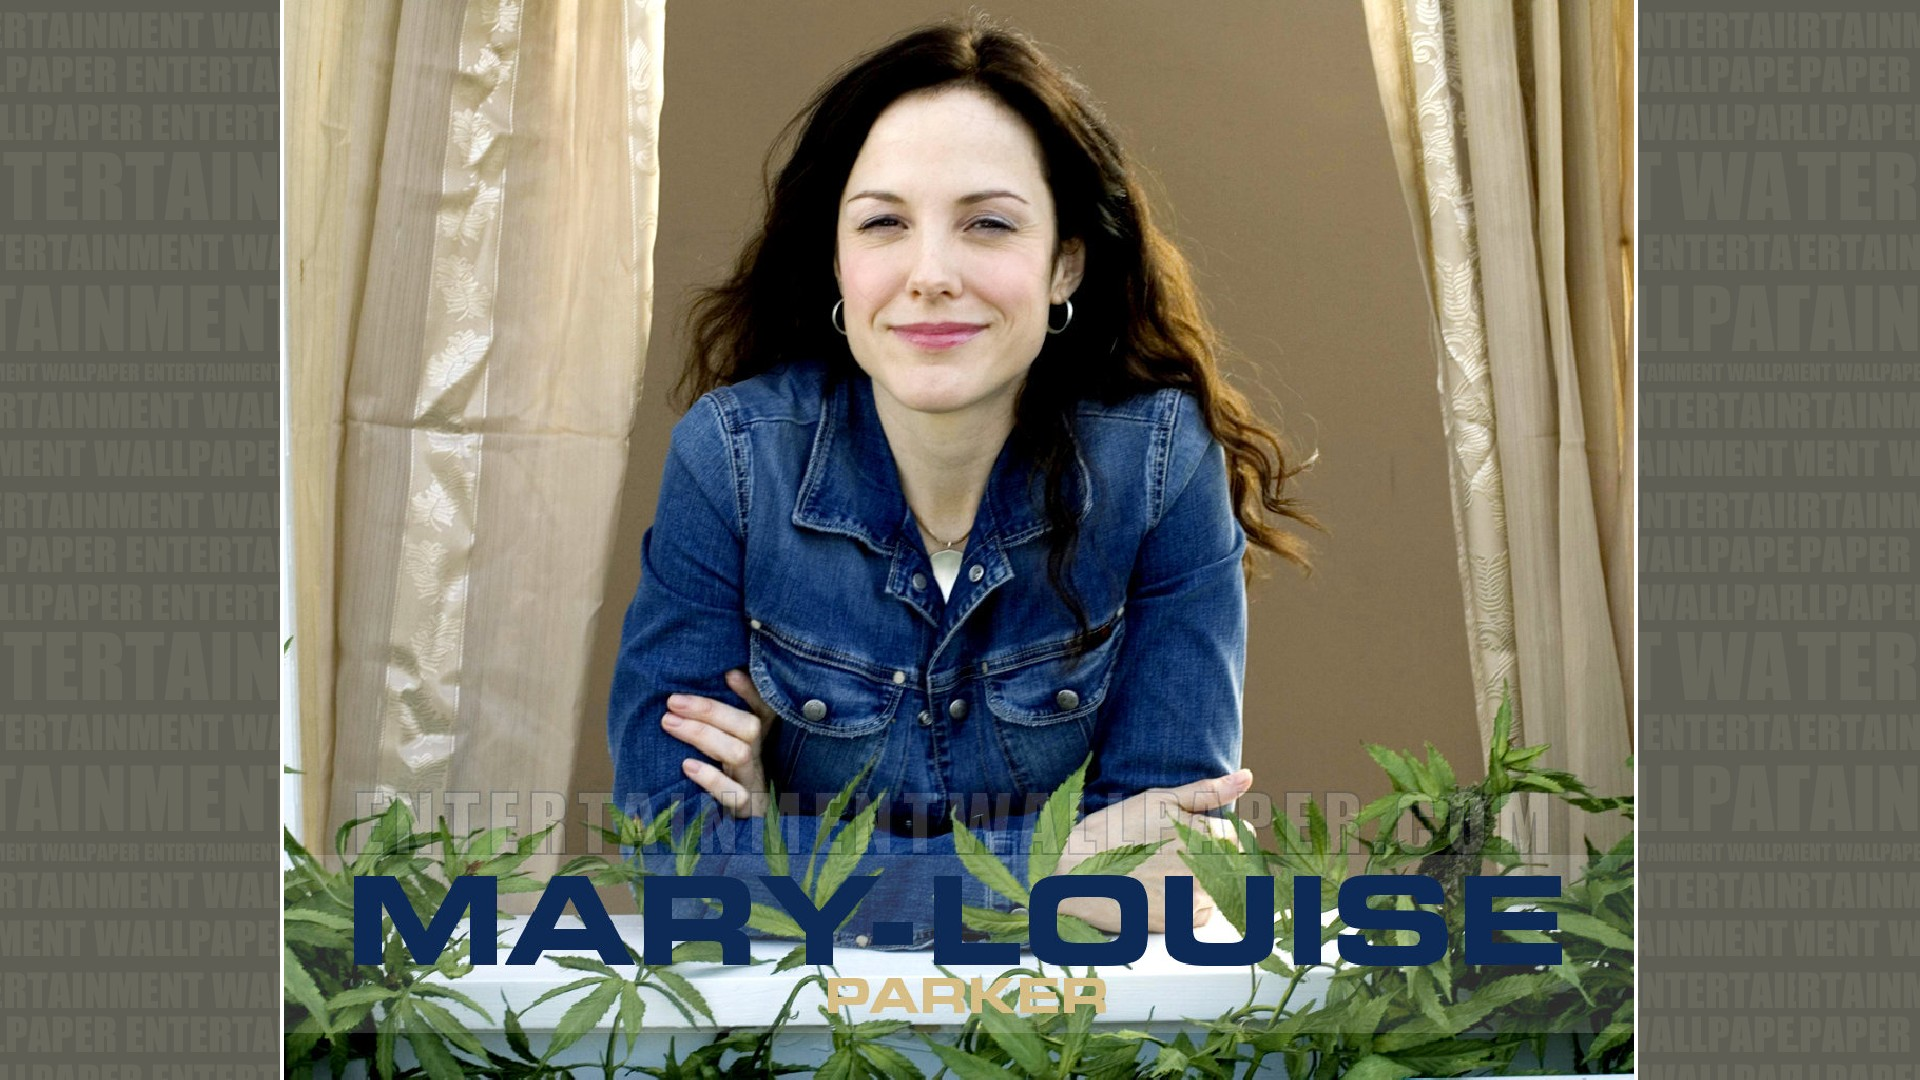 1920x1080 - Mary-Louise Parker Wallpapers 33